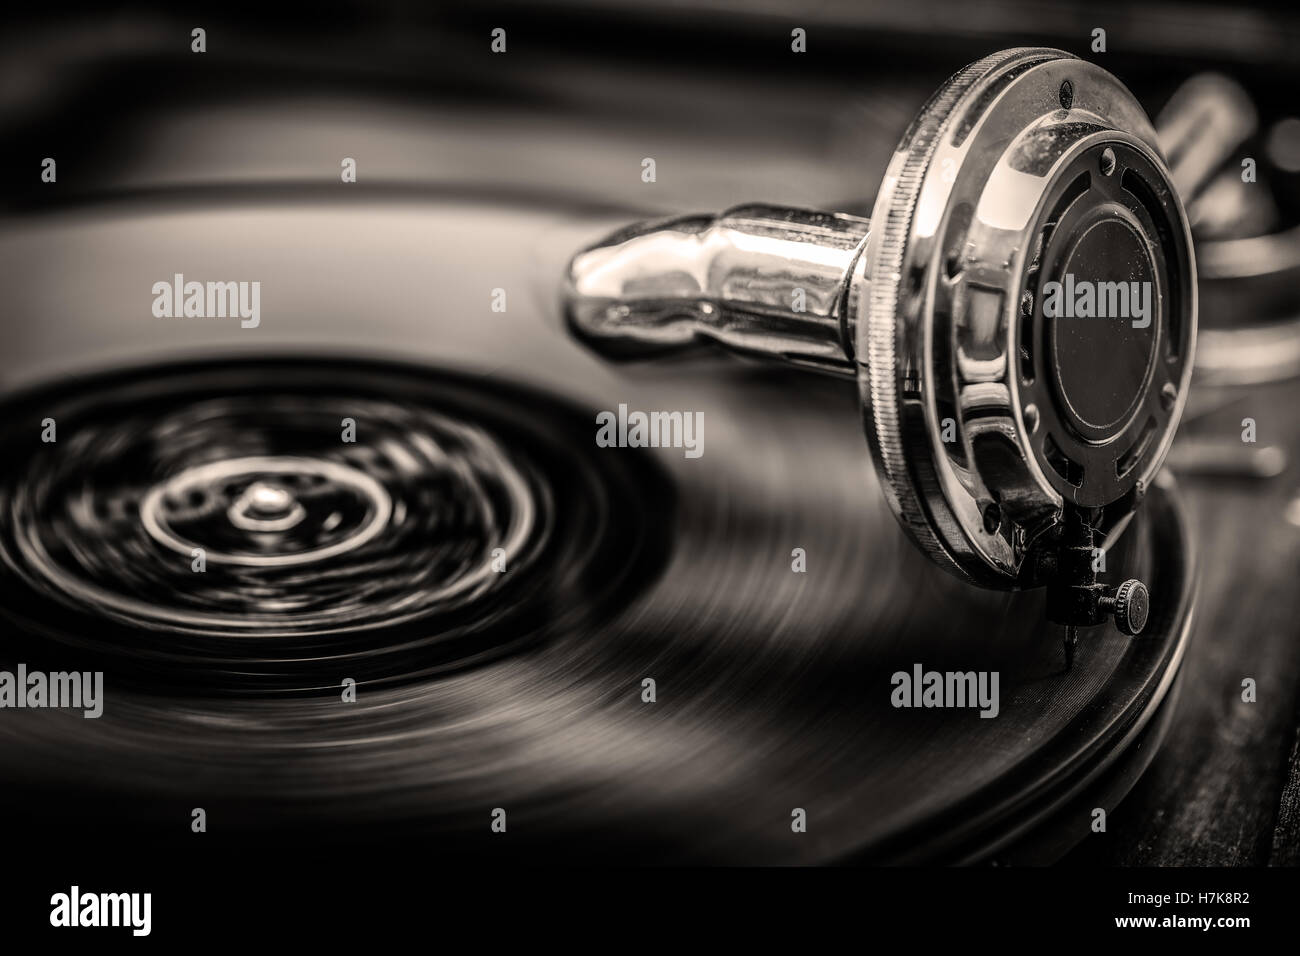 Gramophone playing old disk, old days music, in Sepia Tones, close up shot Stock Photo